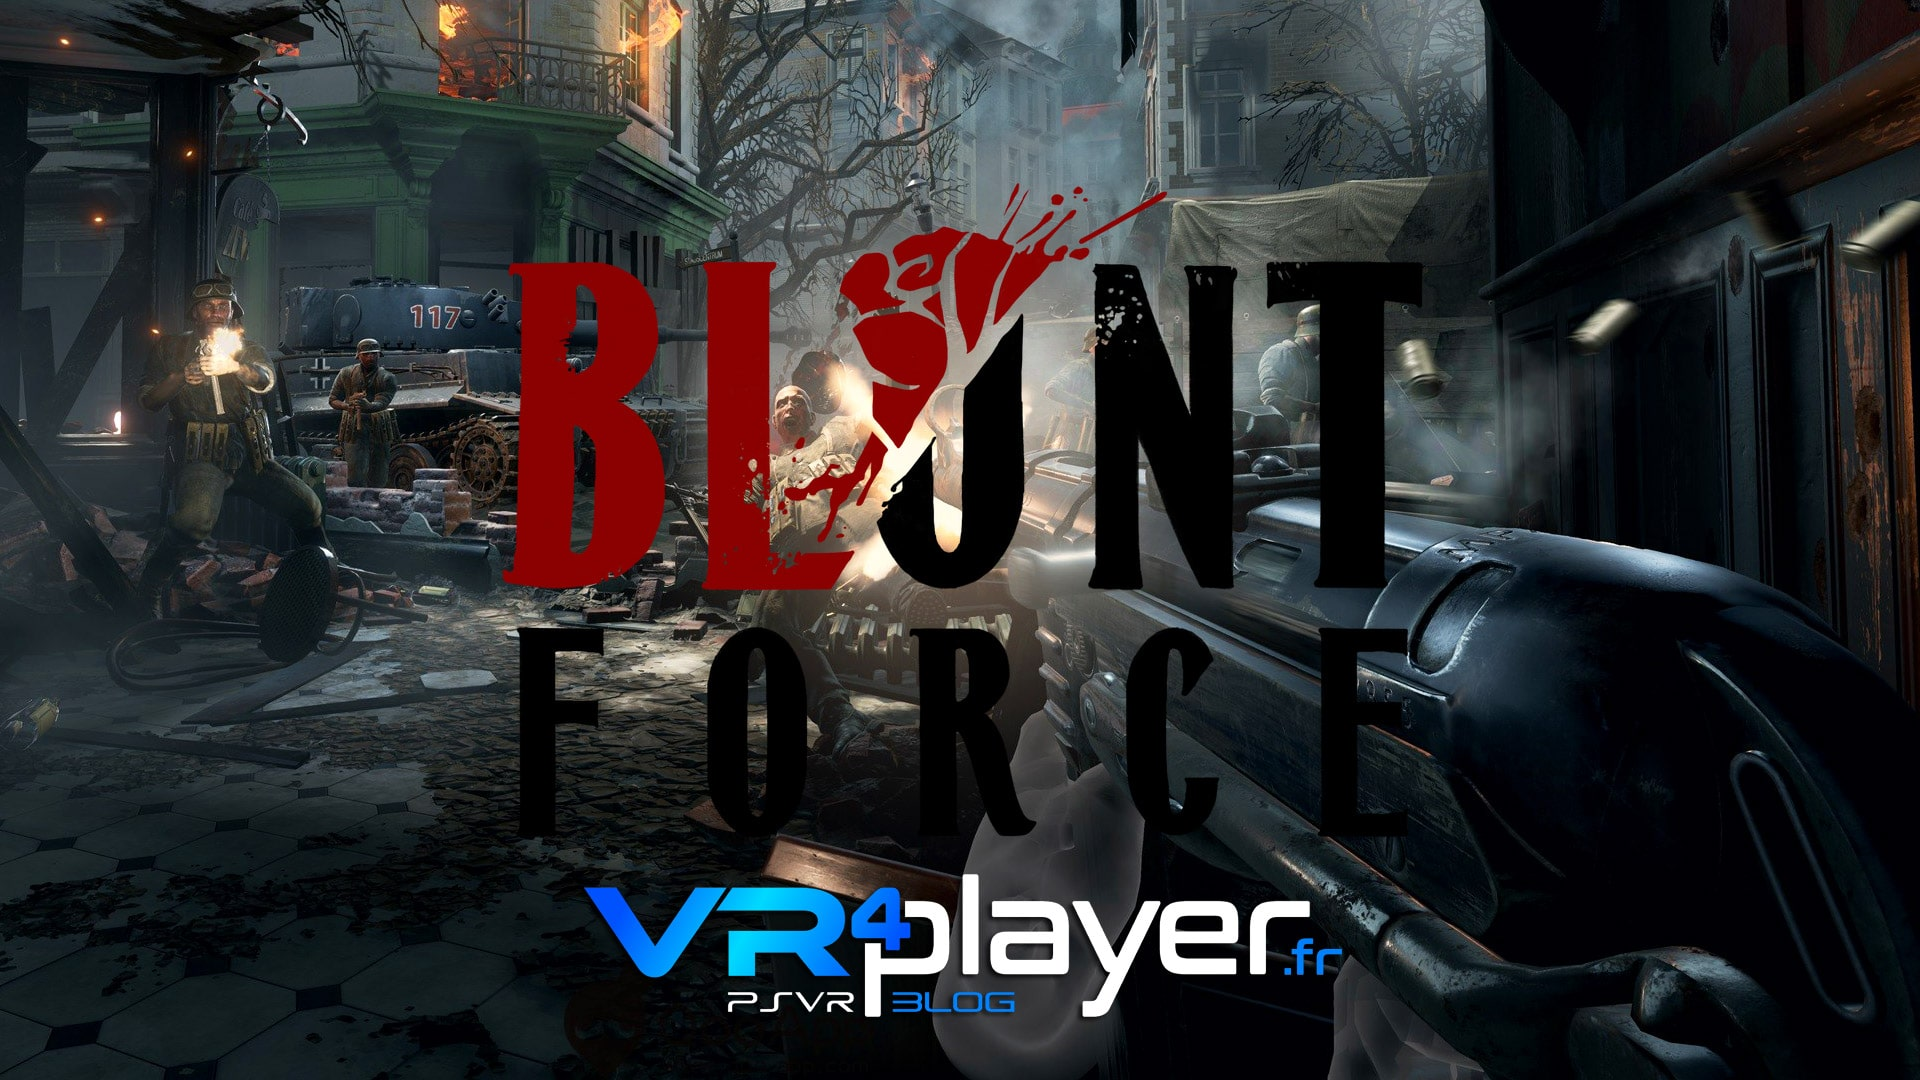 Blunt Force sur PSVR vr4player.fr